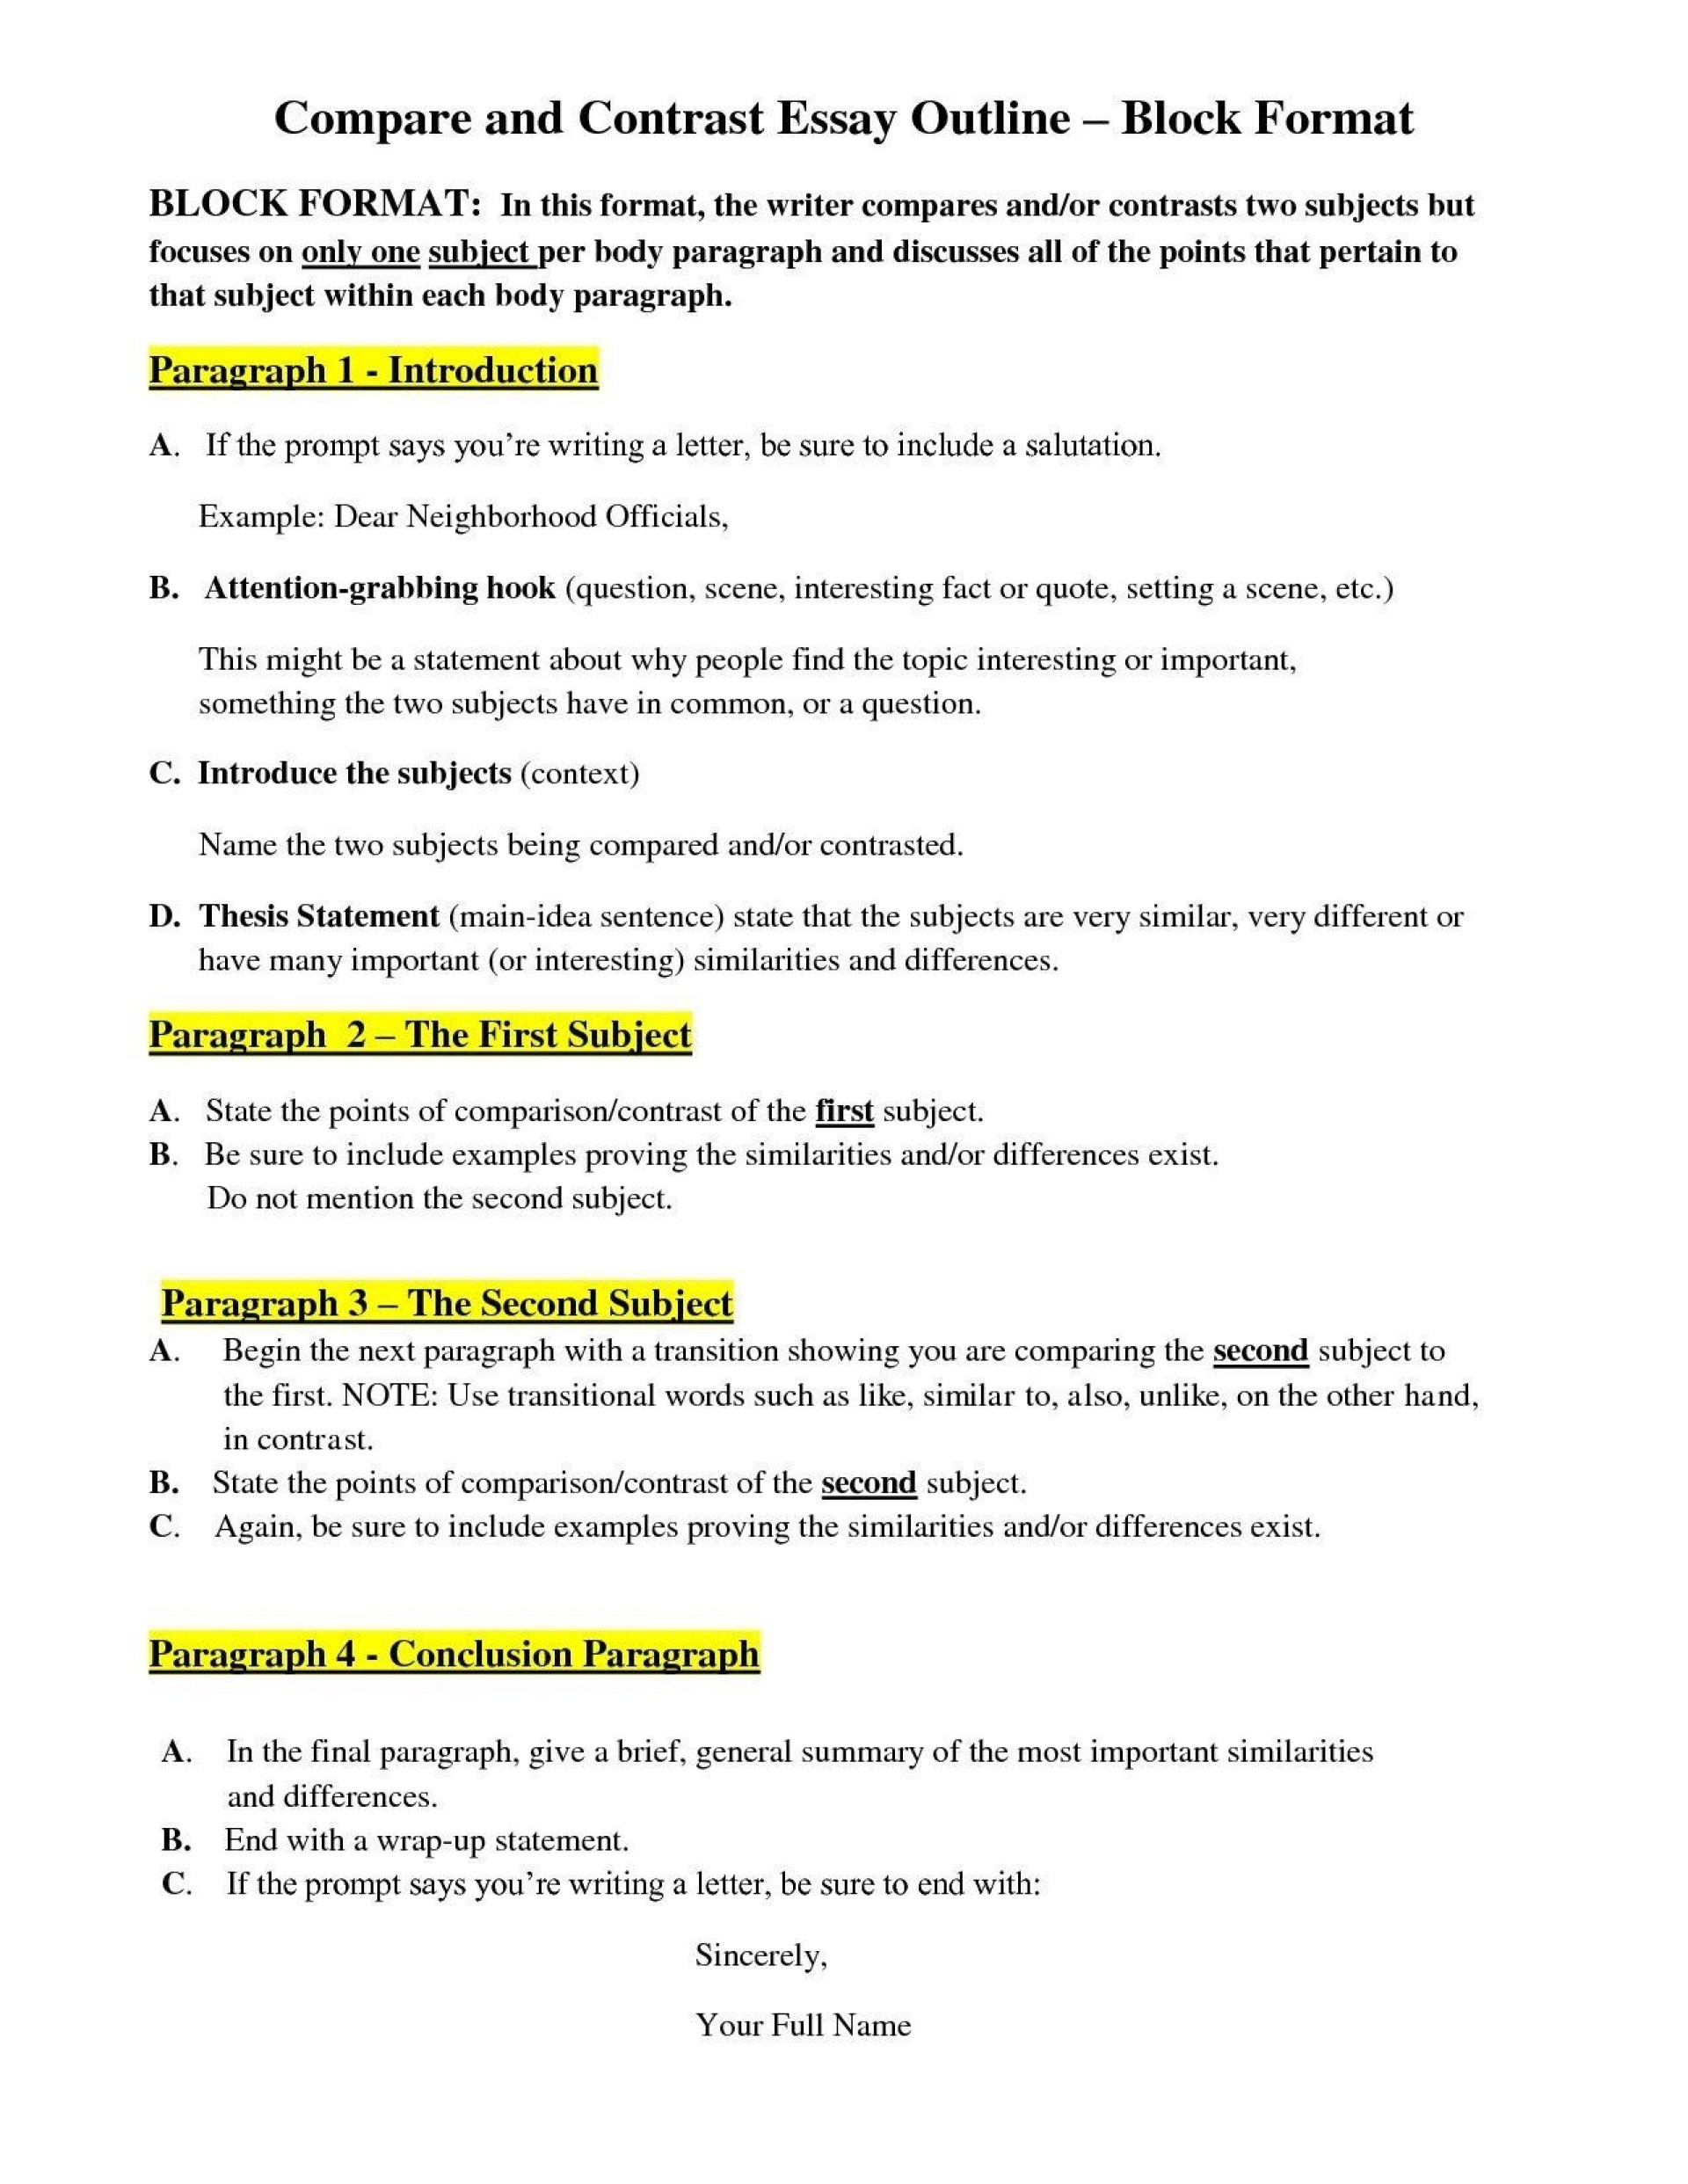 014 Essay Examplempare Andntrastmparison Best Examples Of Scenario In 6th Grade An Goo 3rd Food 5th Middle School Block Format Pdf High 4th Vs Striking Compare And Contrast Example Topics 9th 1920